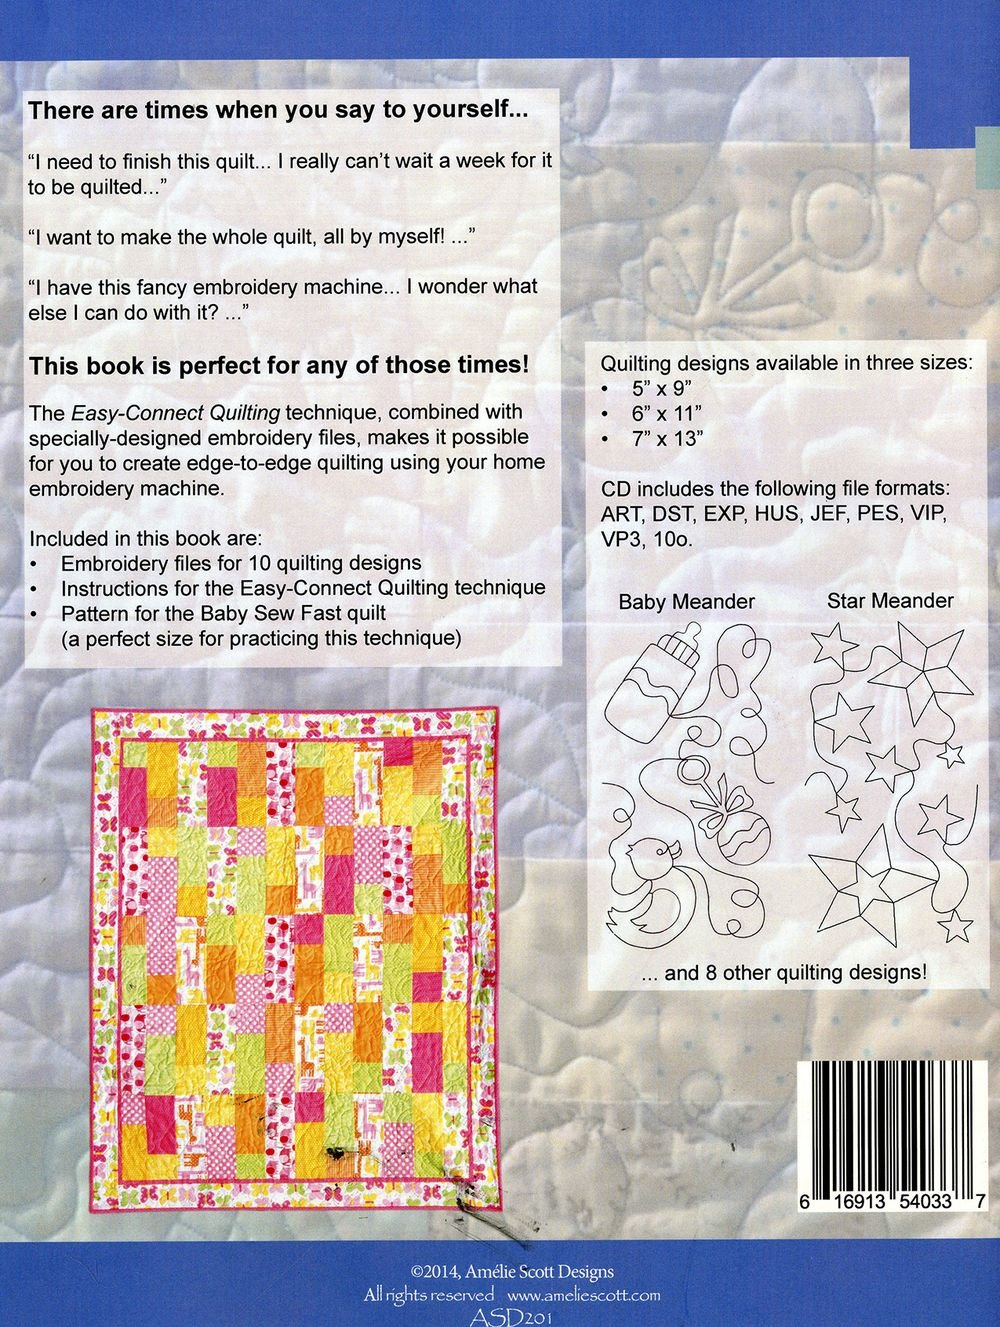 Edgetoedge Quilting On Your Embroidery Machine: Quilting Like On A  Longarm, Done In A Day: Includes Cd With Files For 10 Quilting Designs:  Amelie Scott: